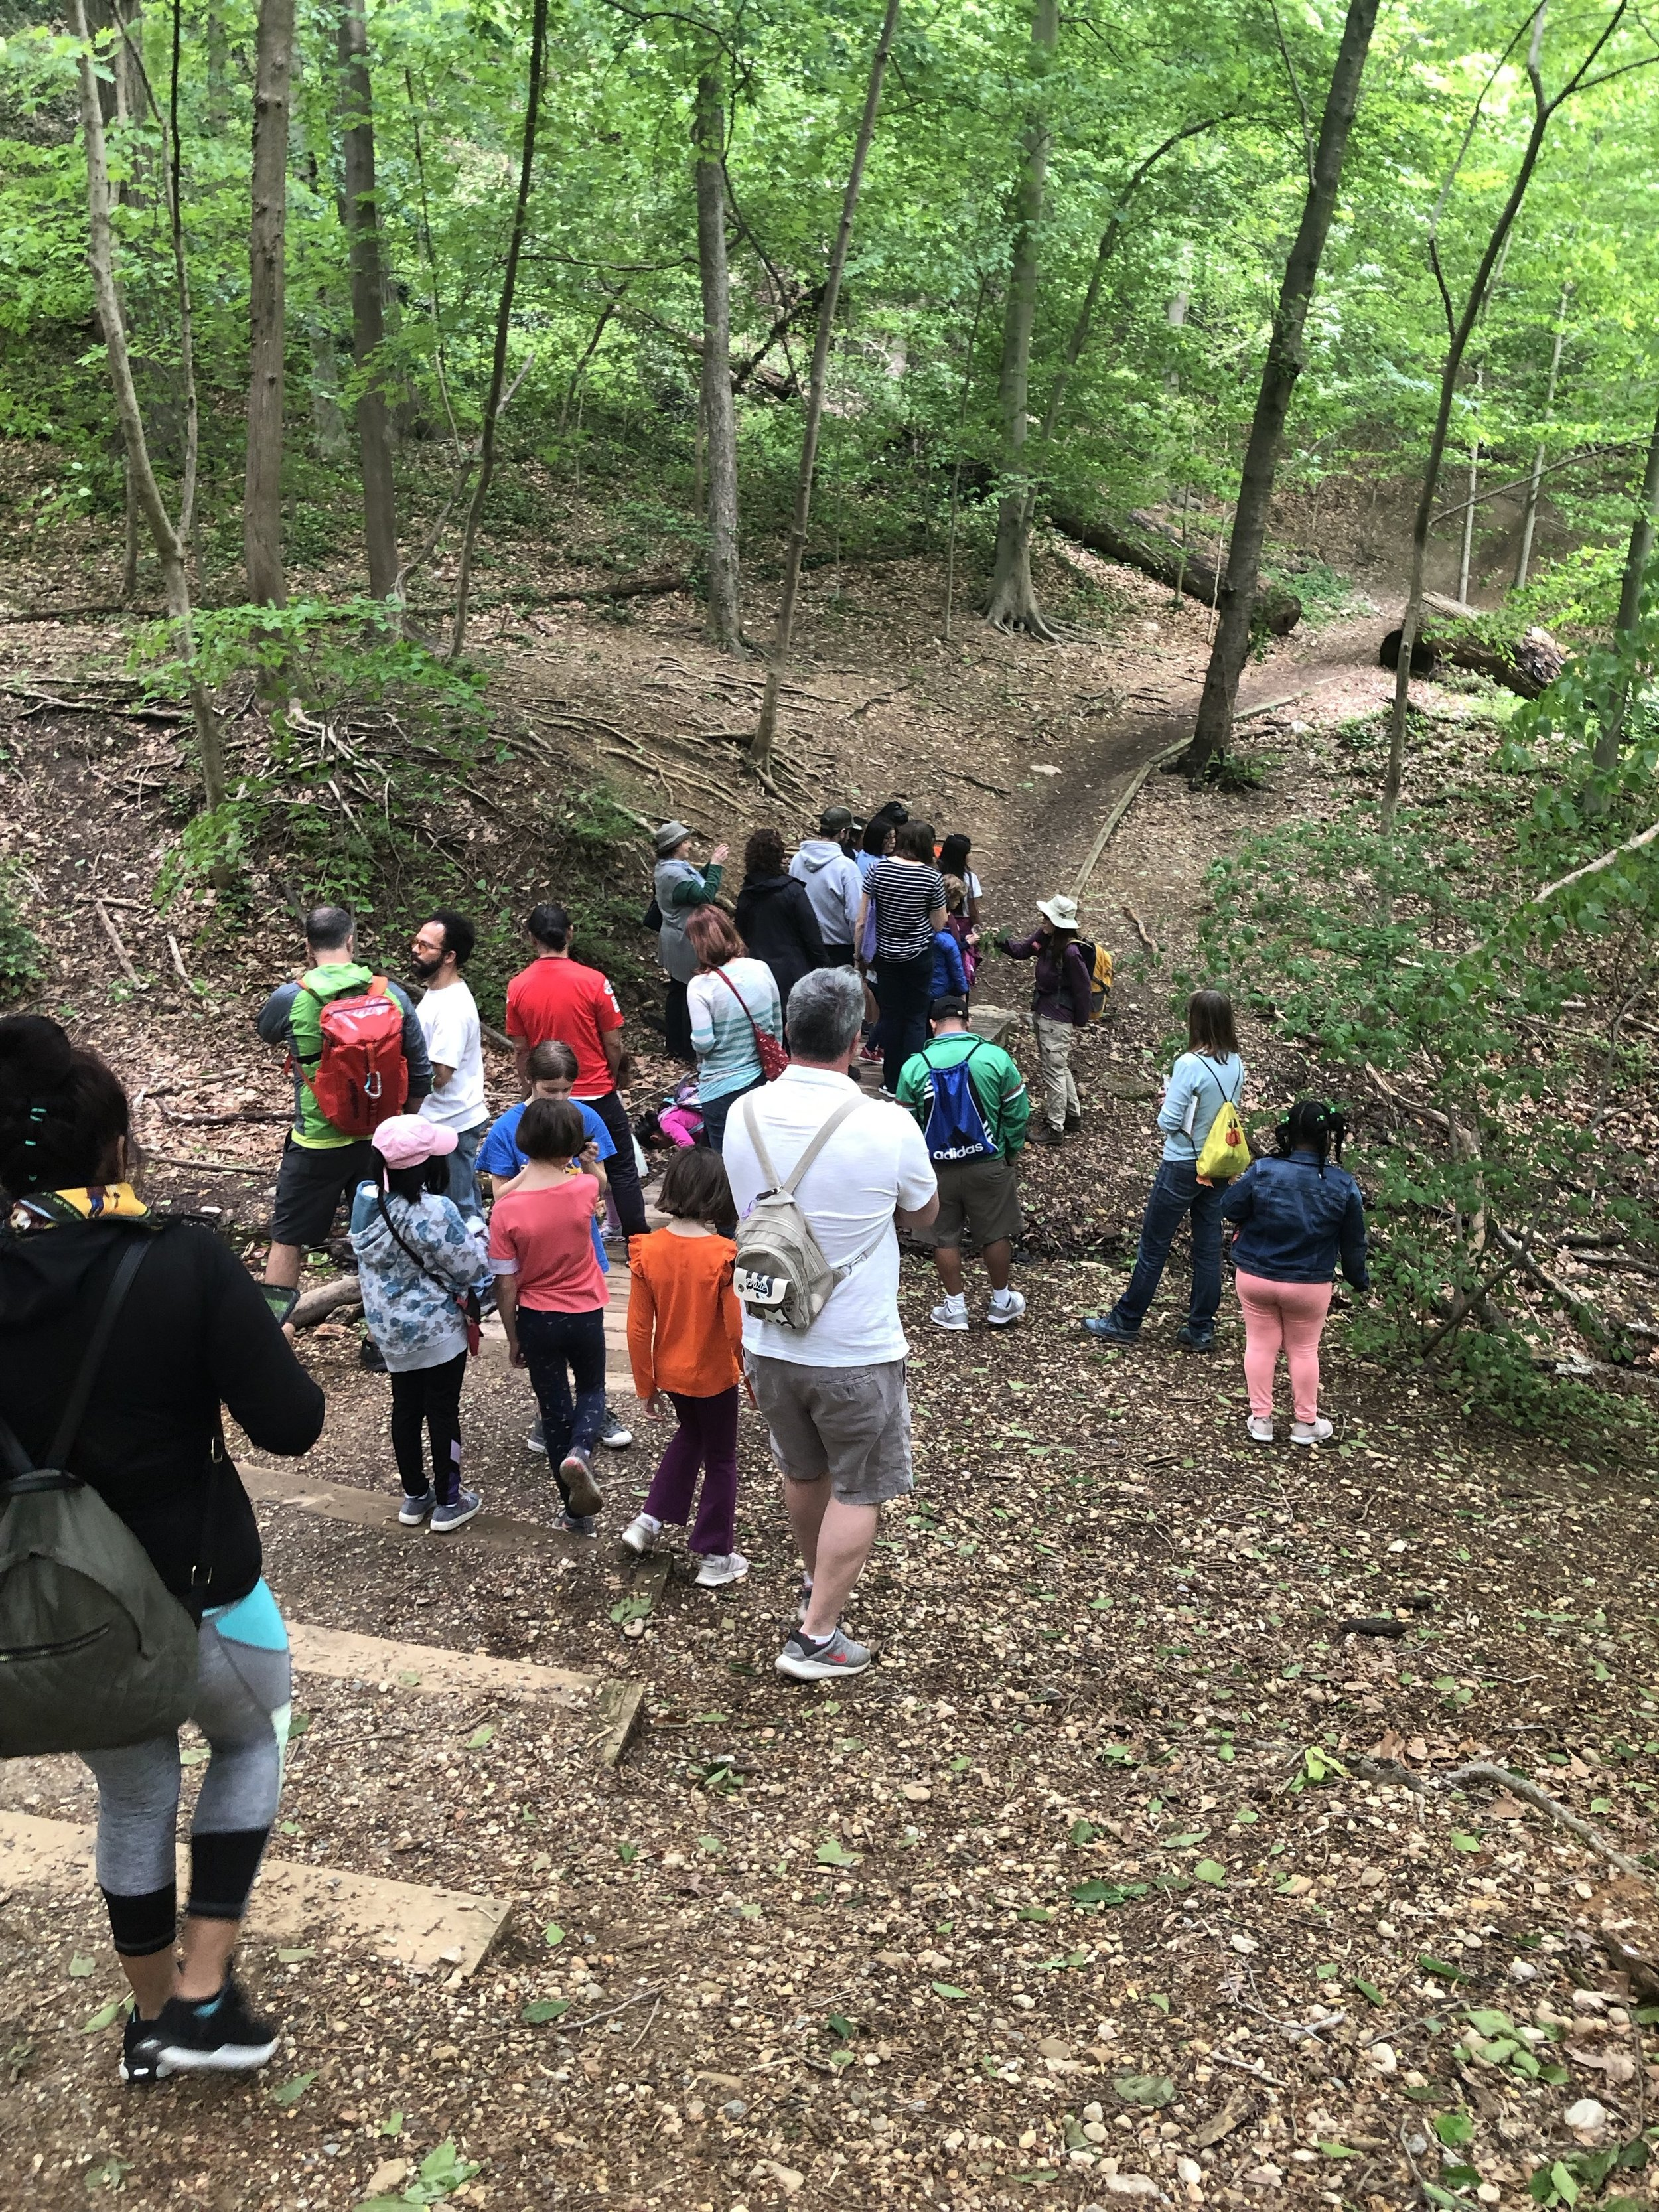 One of the groups heads down the trail in search of plants, animals, and insects to document in iNaturalist.